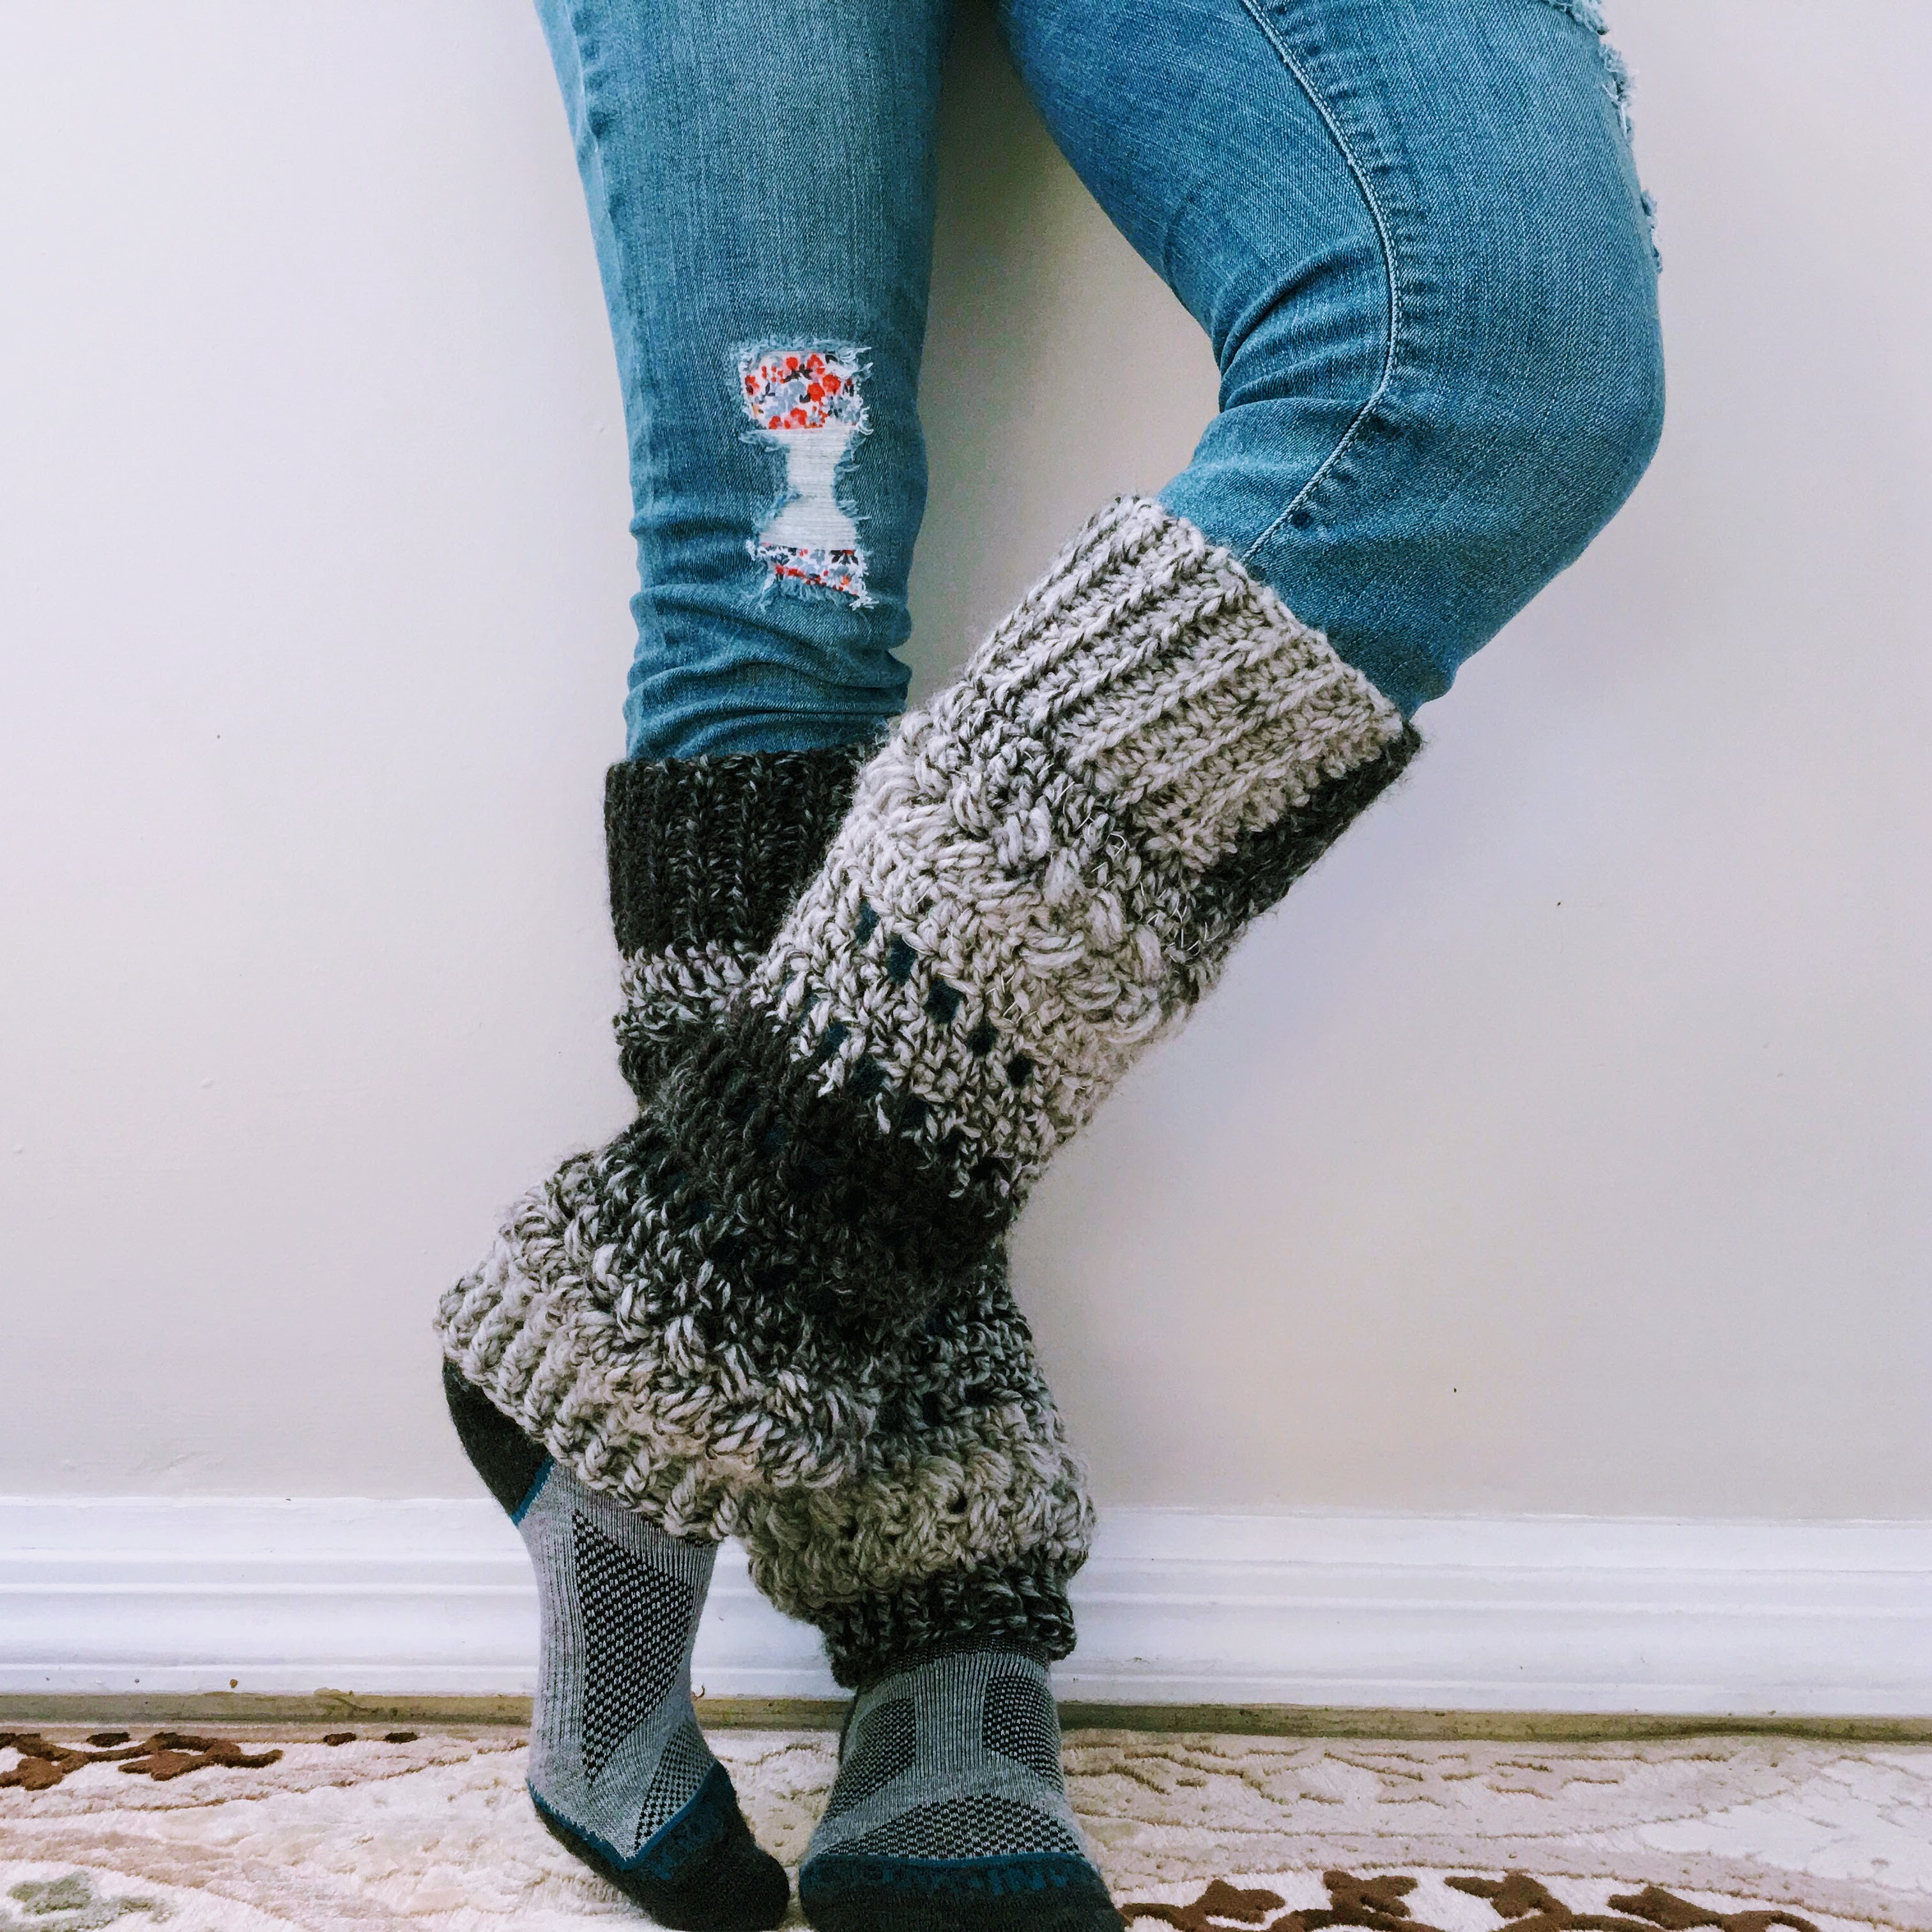 Size: One Size Fits Most Leg Wear Essentials Leg Warmers